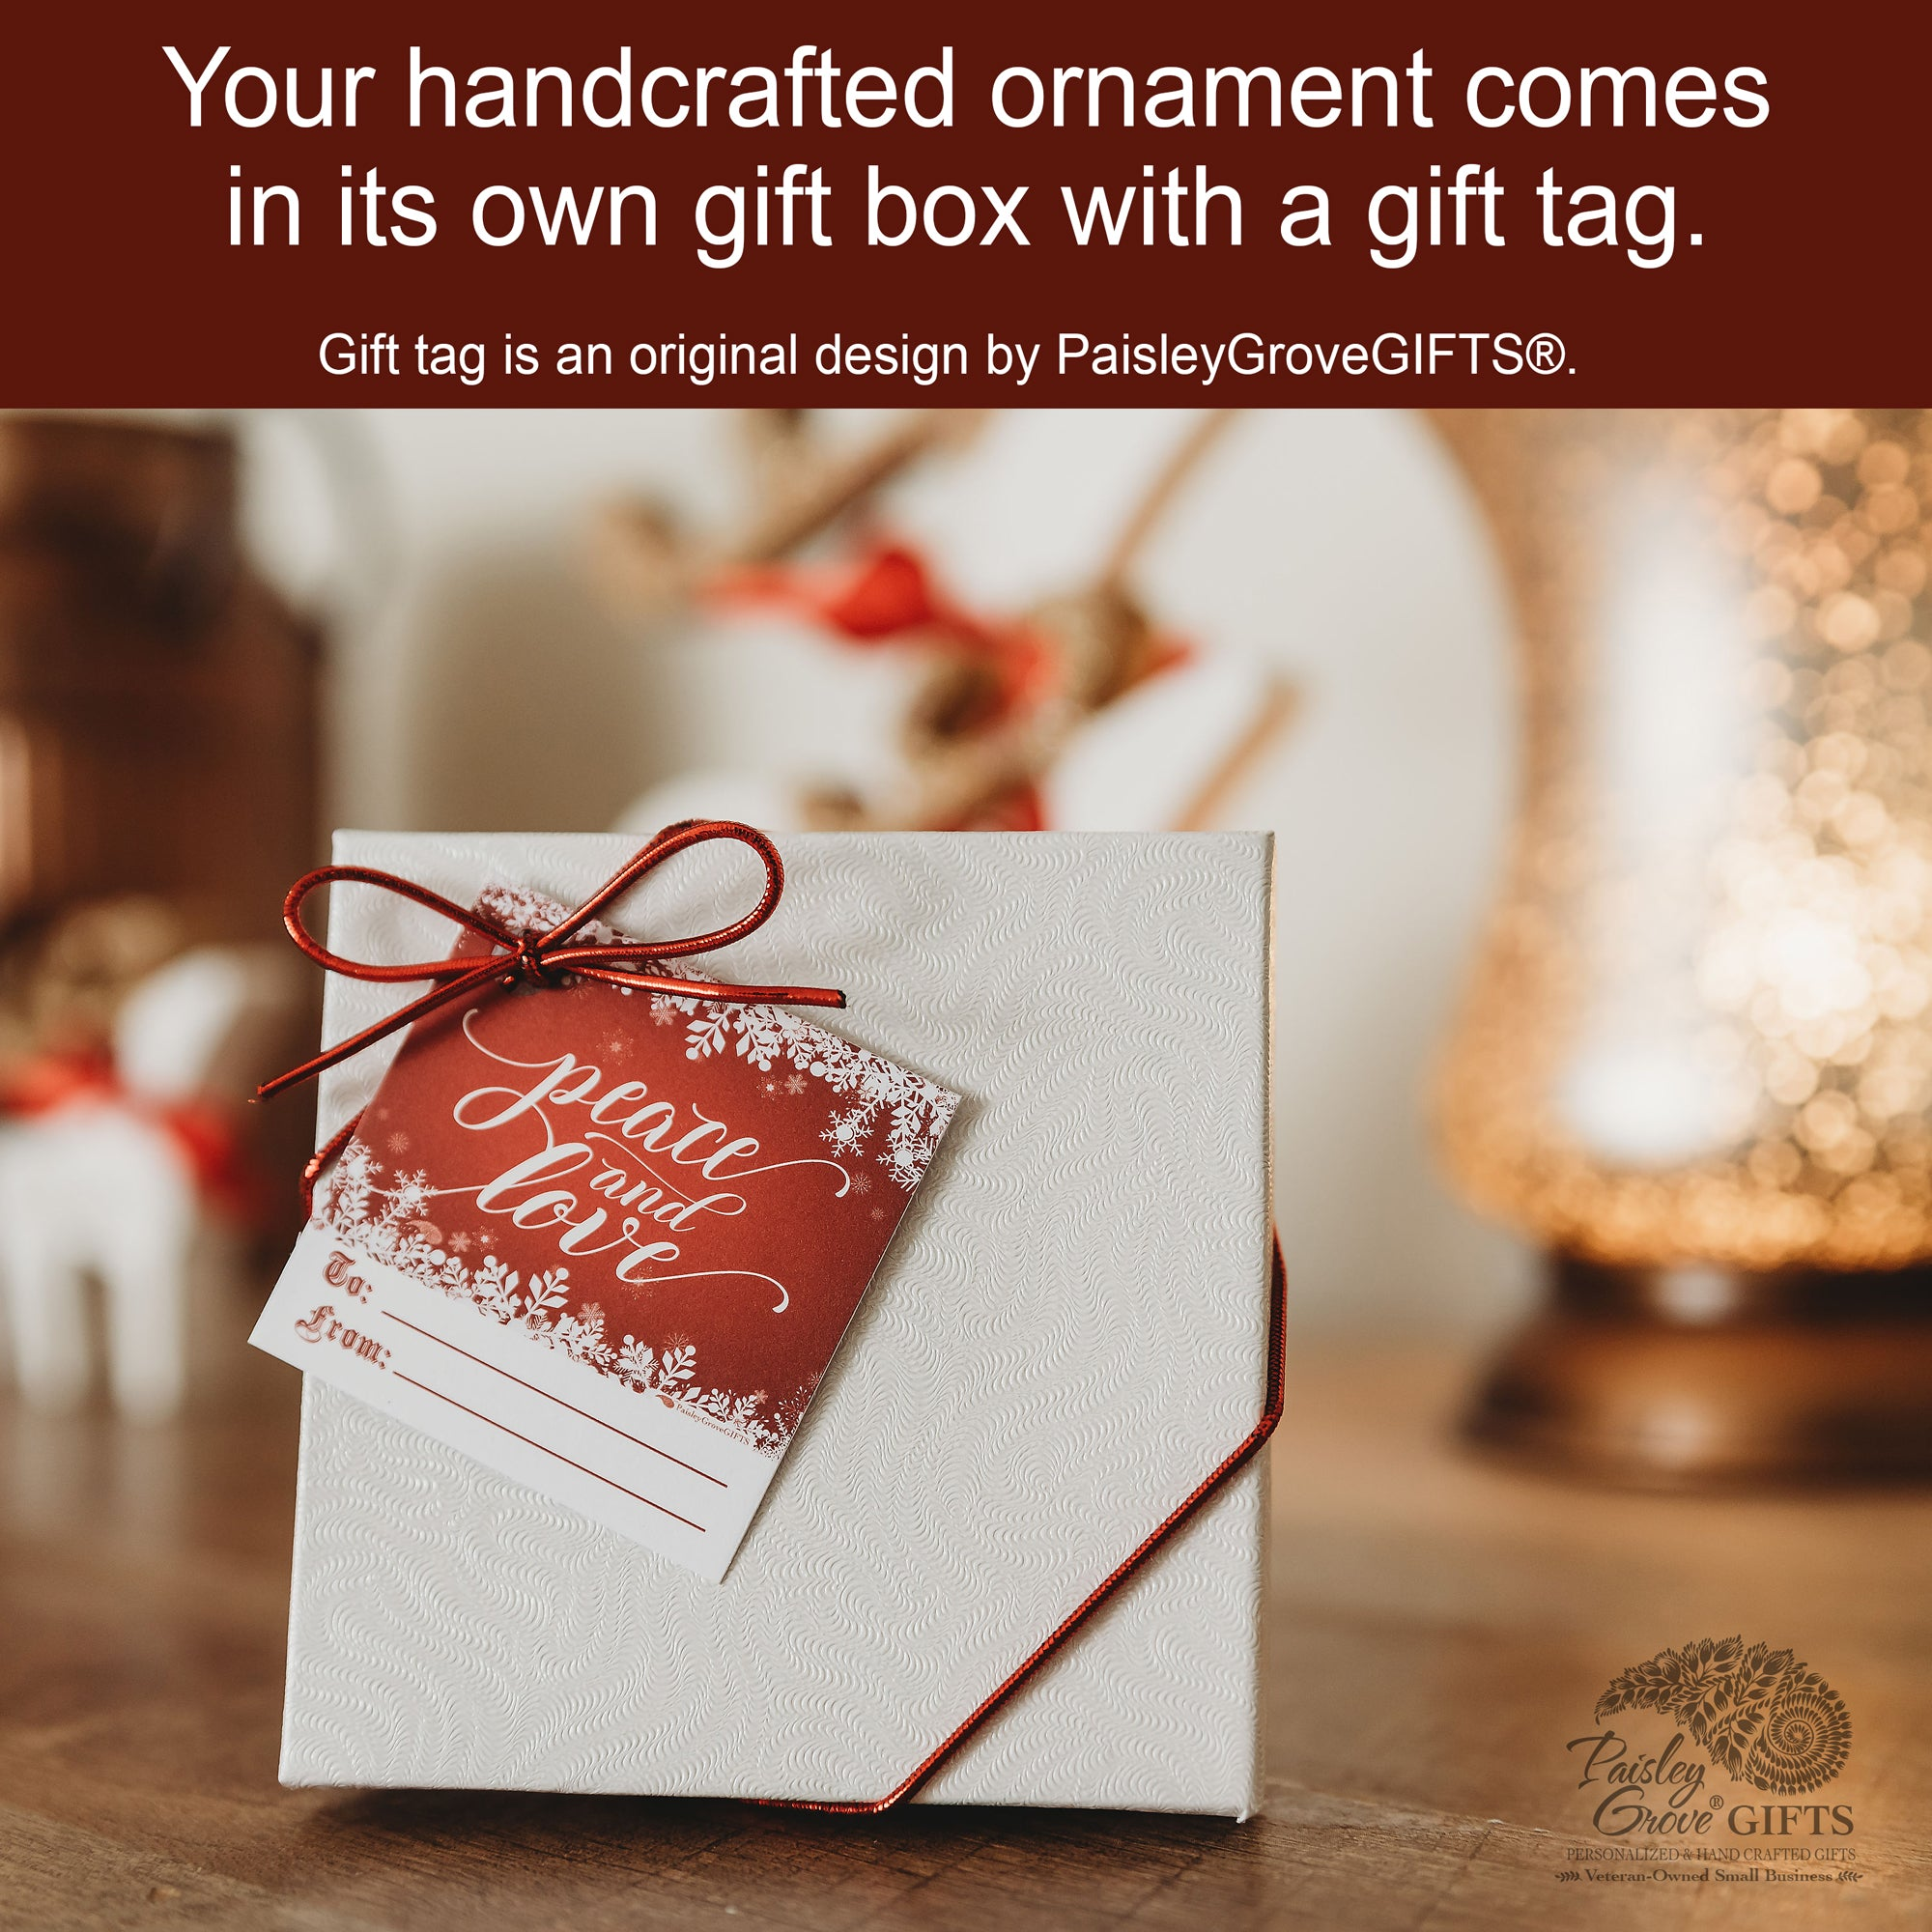 CopyrightPaisleyGroveGIFTS S517a Monogrammed Christmas Ornament Ugly Christmas Sweater comes in gift box